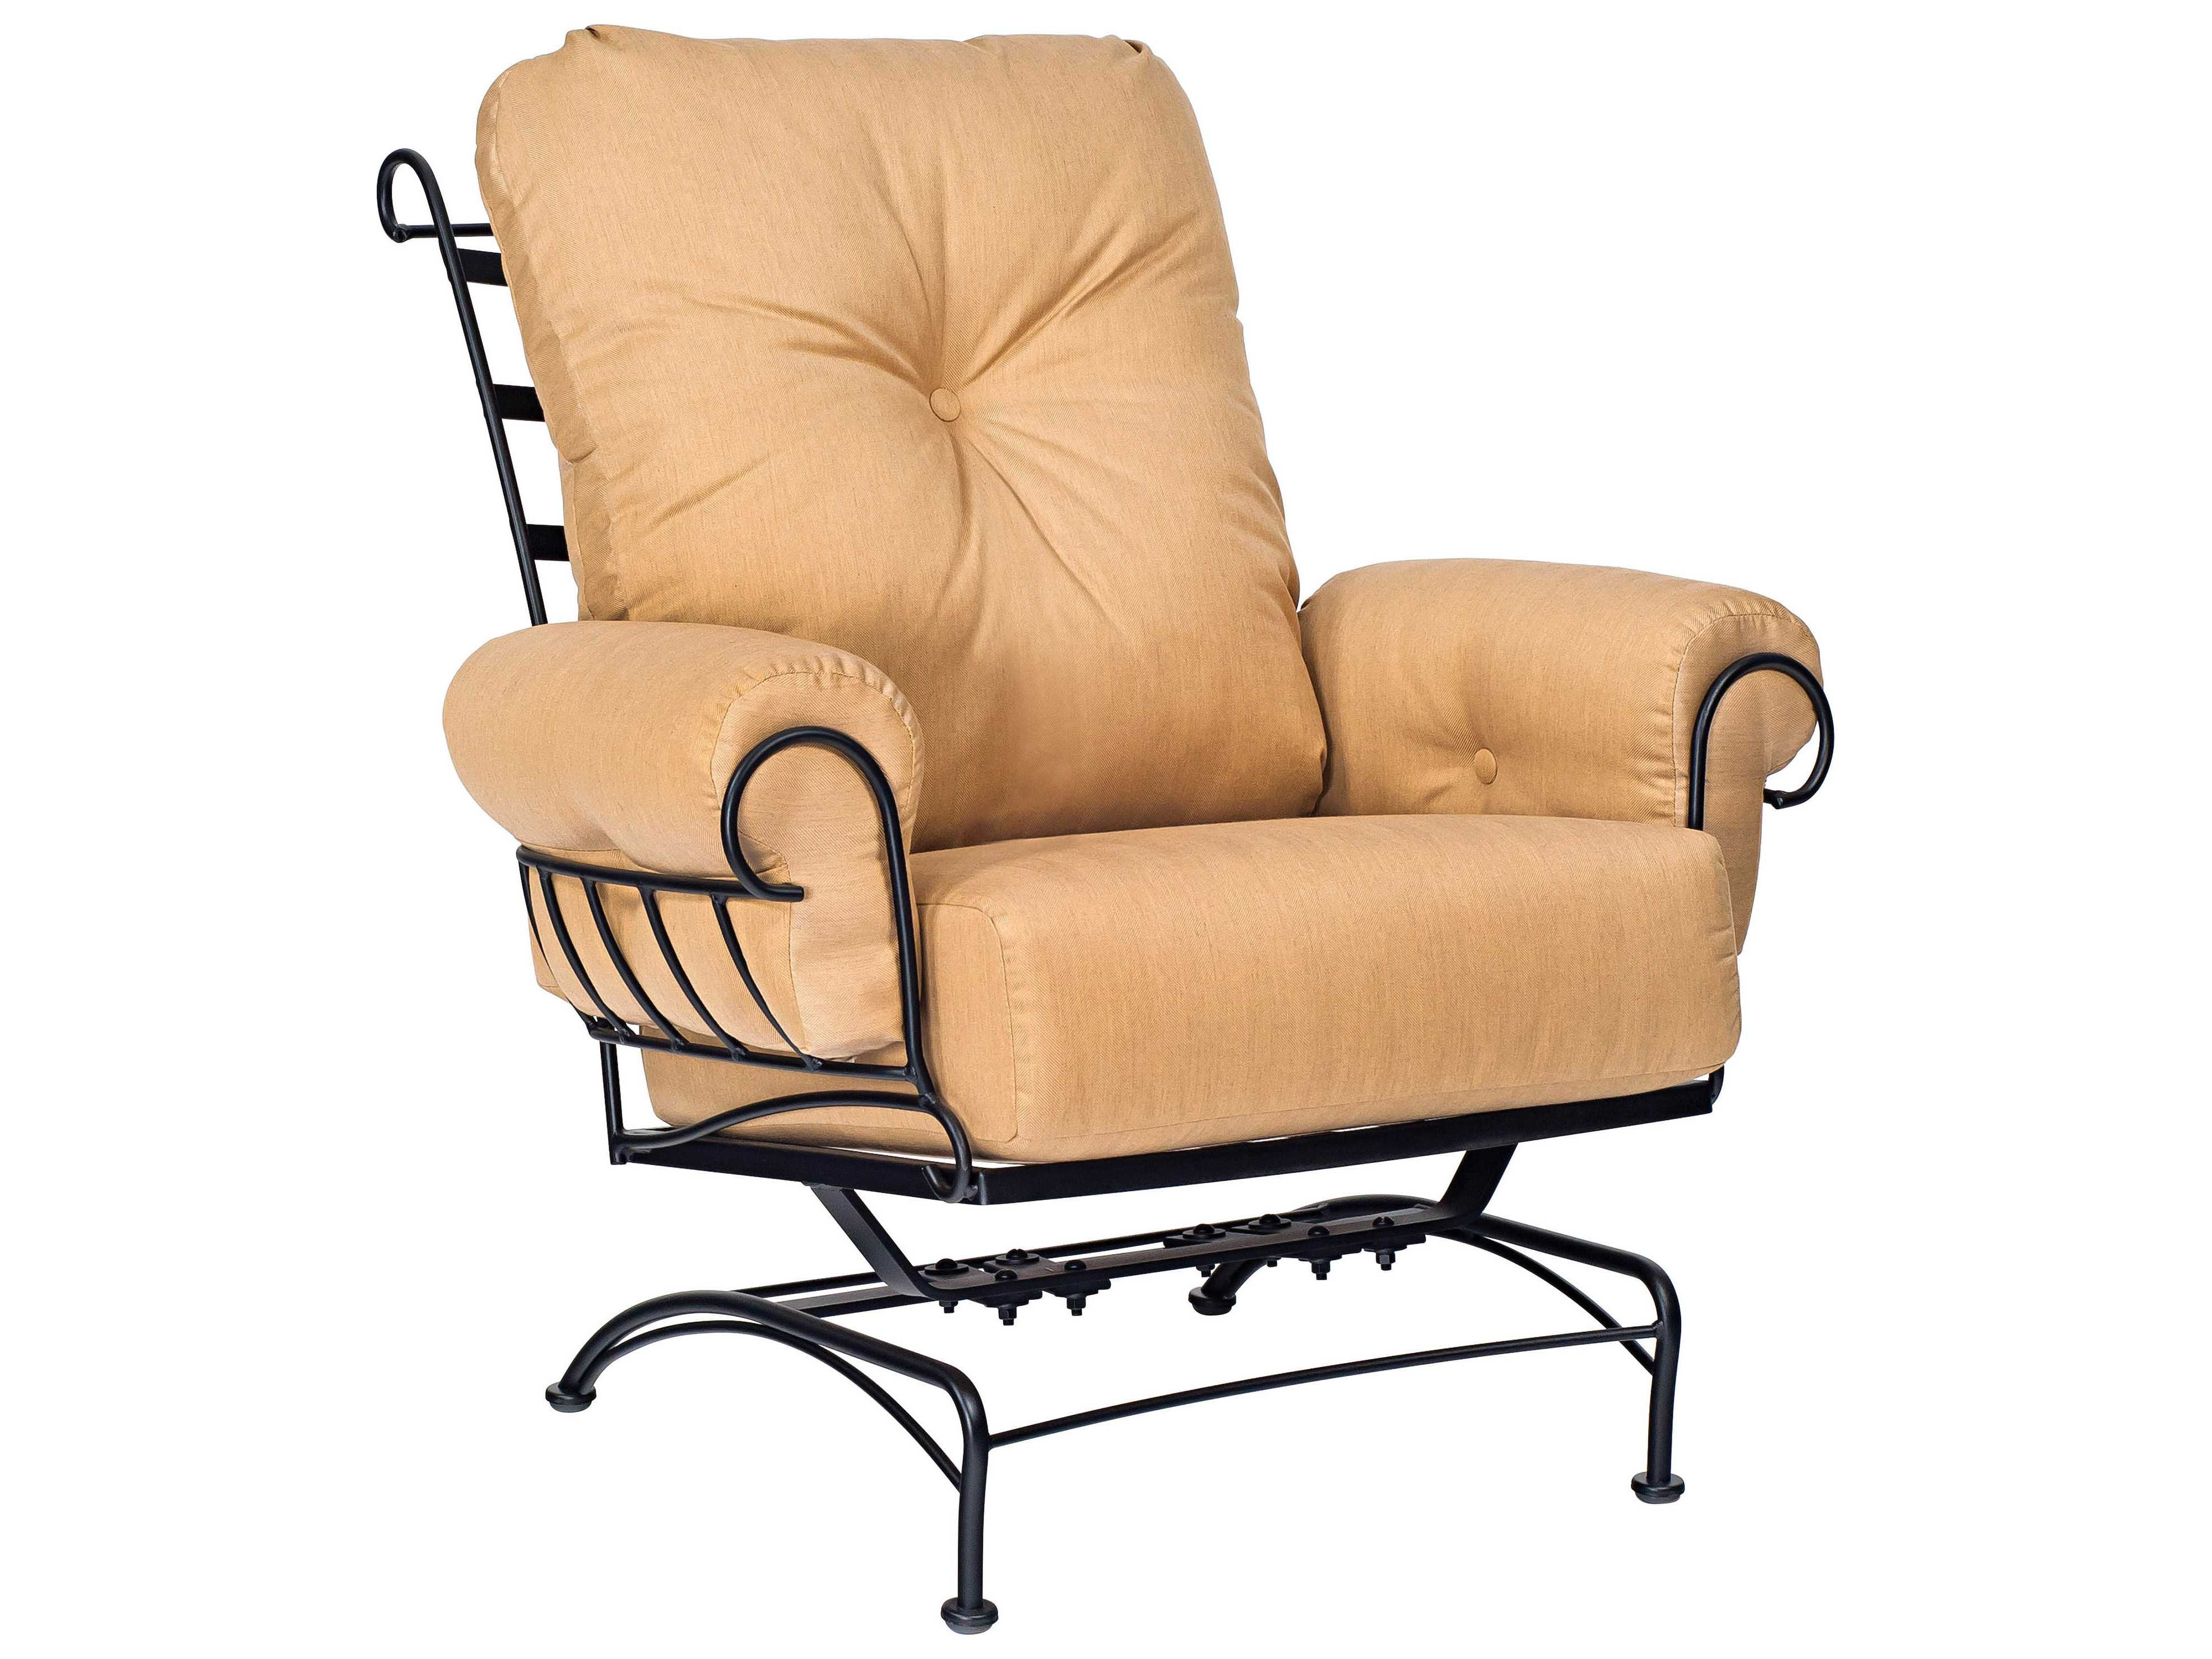 Woodard Terrace Cushion Wrought Iron Spring Lounge Chair FREE SHIPPING From  $900.90